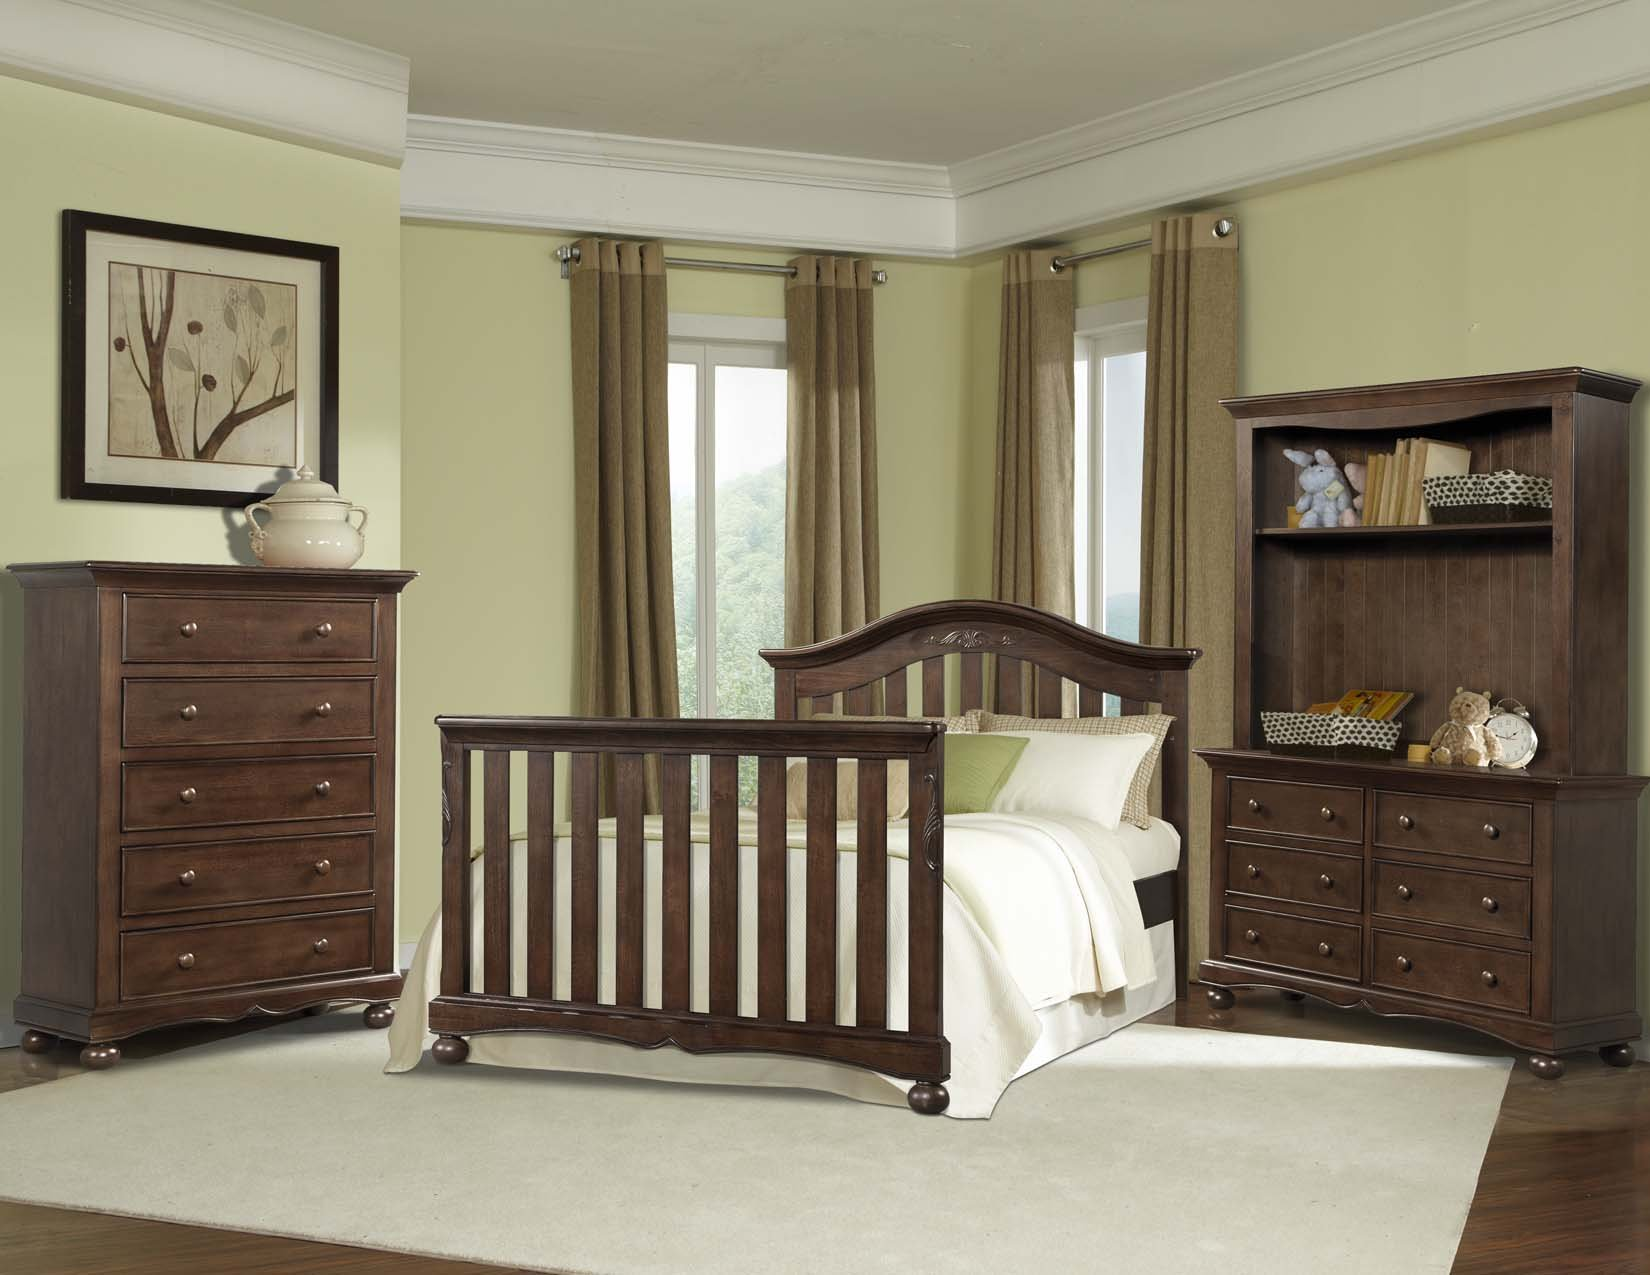 Westwood Design Meadowdale Conversion Bed Rails, Madera by Westwood Design (Image #3)